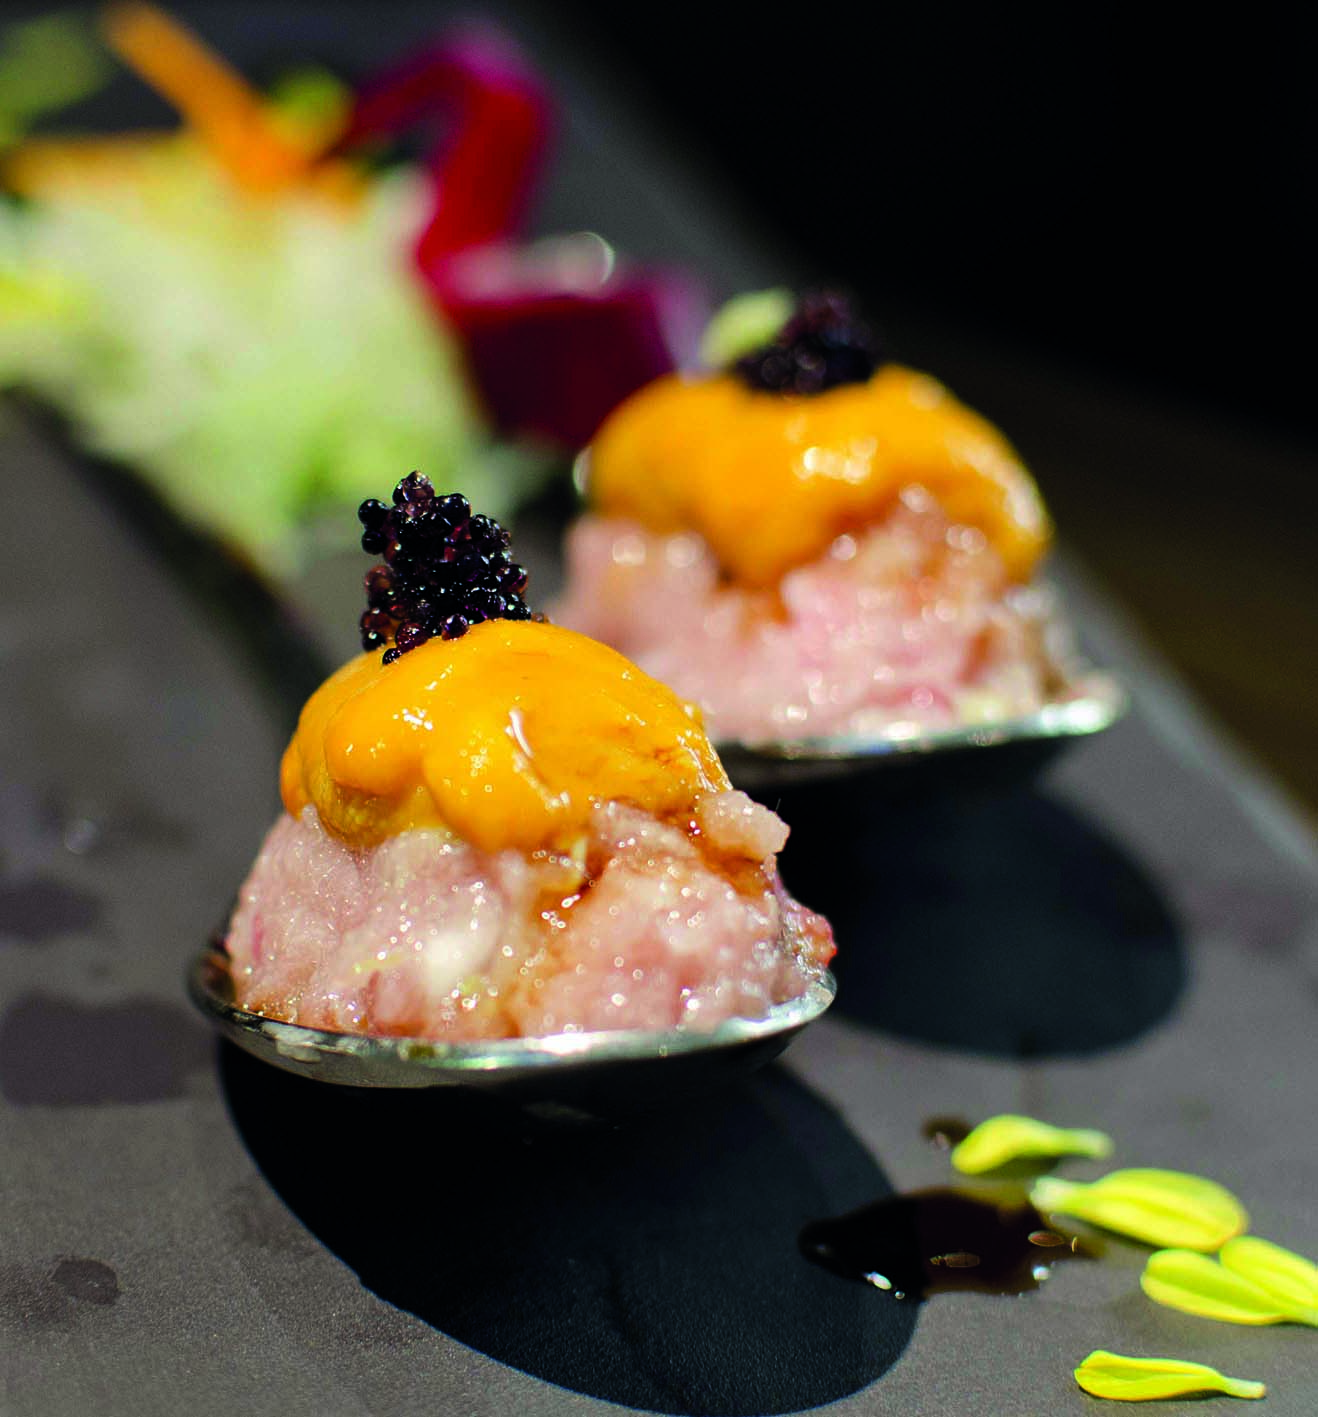 Negitoro tartare crowned with a tongue of sea urchin and black roe at the Flying Squirrel.